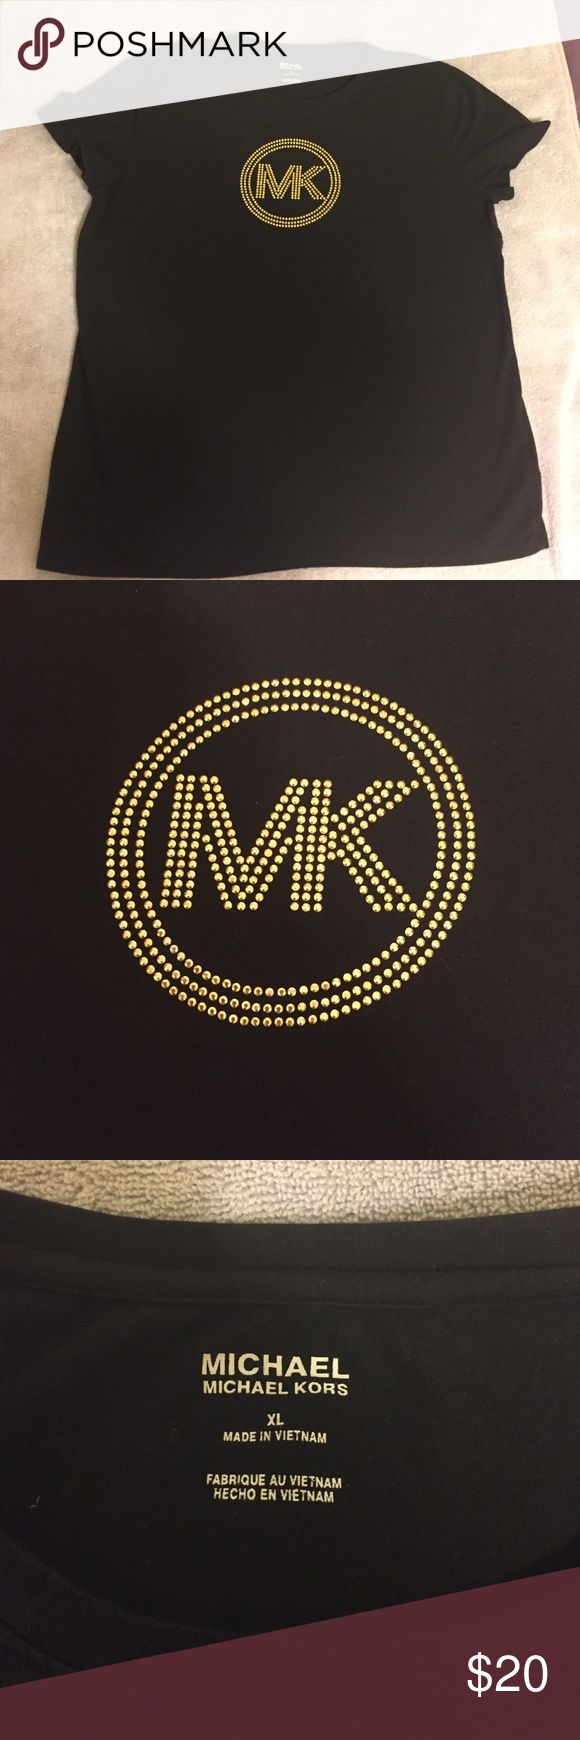 Michael Kors black t-shirt Michael Kors black XL t-shirt with gold decoration. In perfect condition, worn twice. Very comfy with a little bit of dazzle! Michael Kors Tops Tees - Short Sleeve